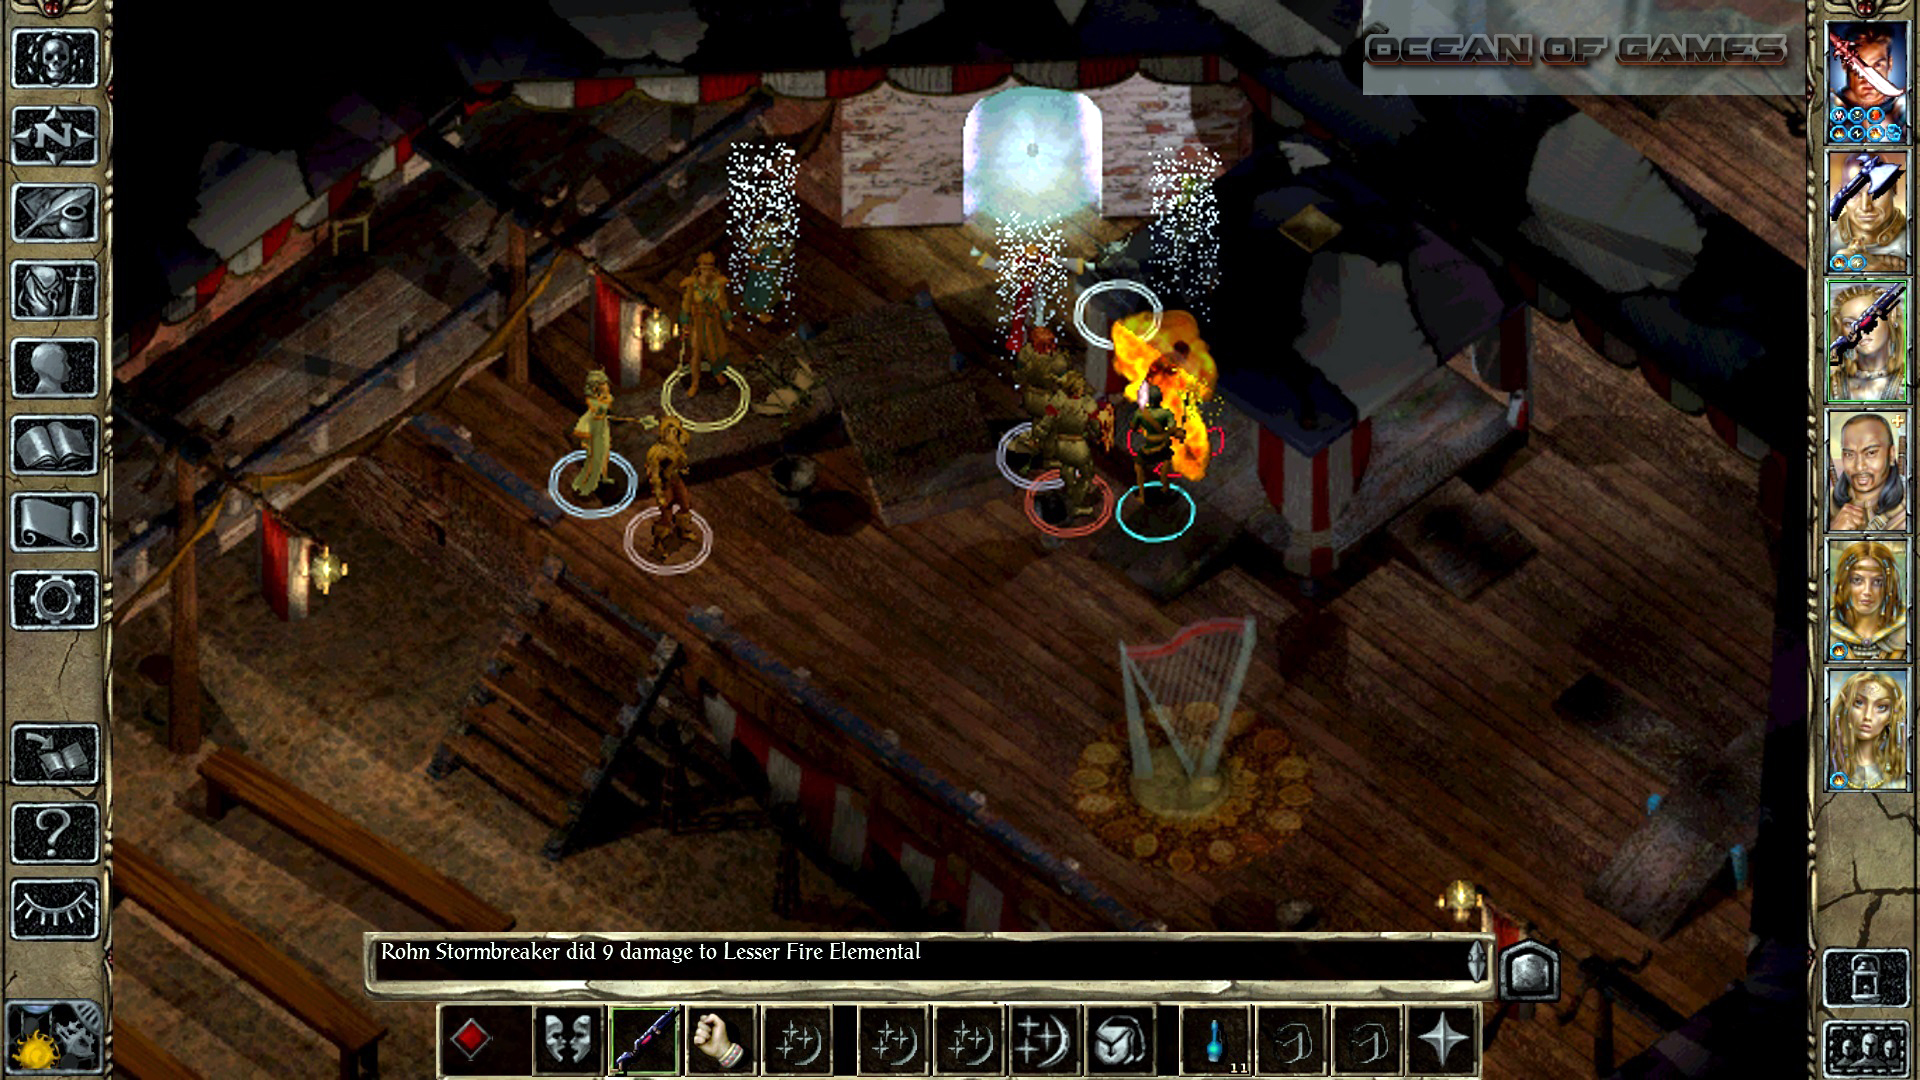 Baldur's Gate 2 Download For Free